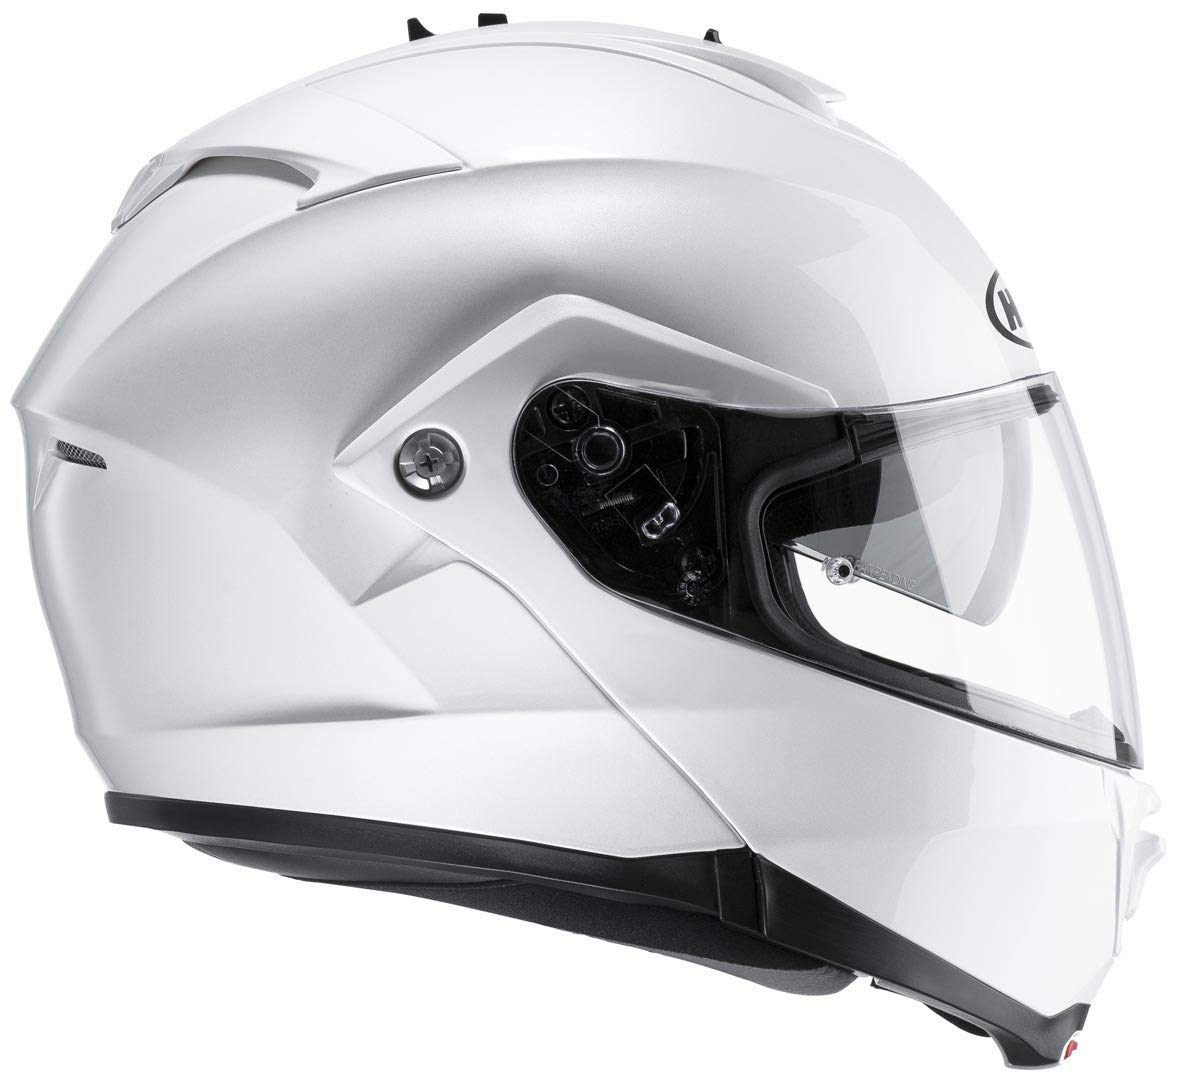 Taille M HJC Casque Moto IS MAX II Blanc